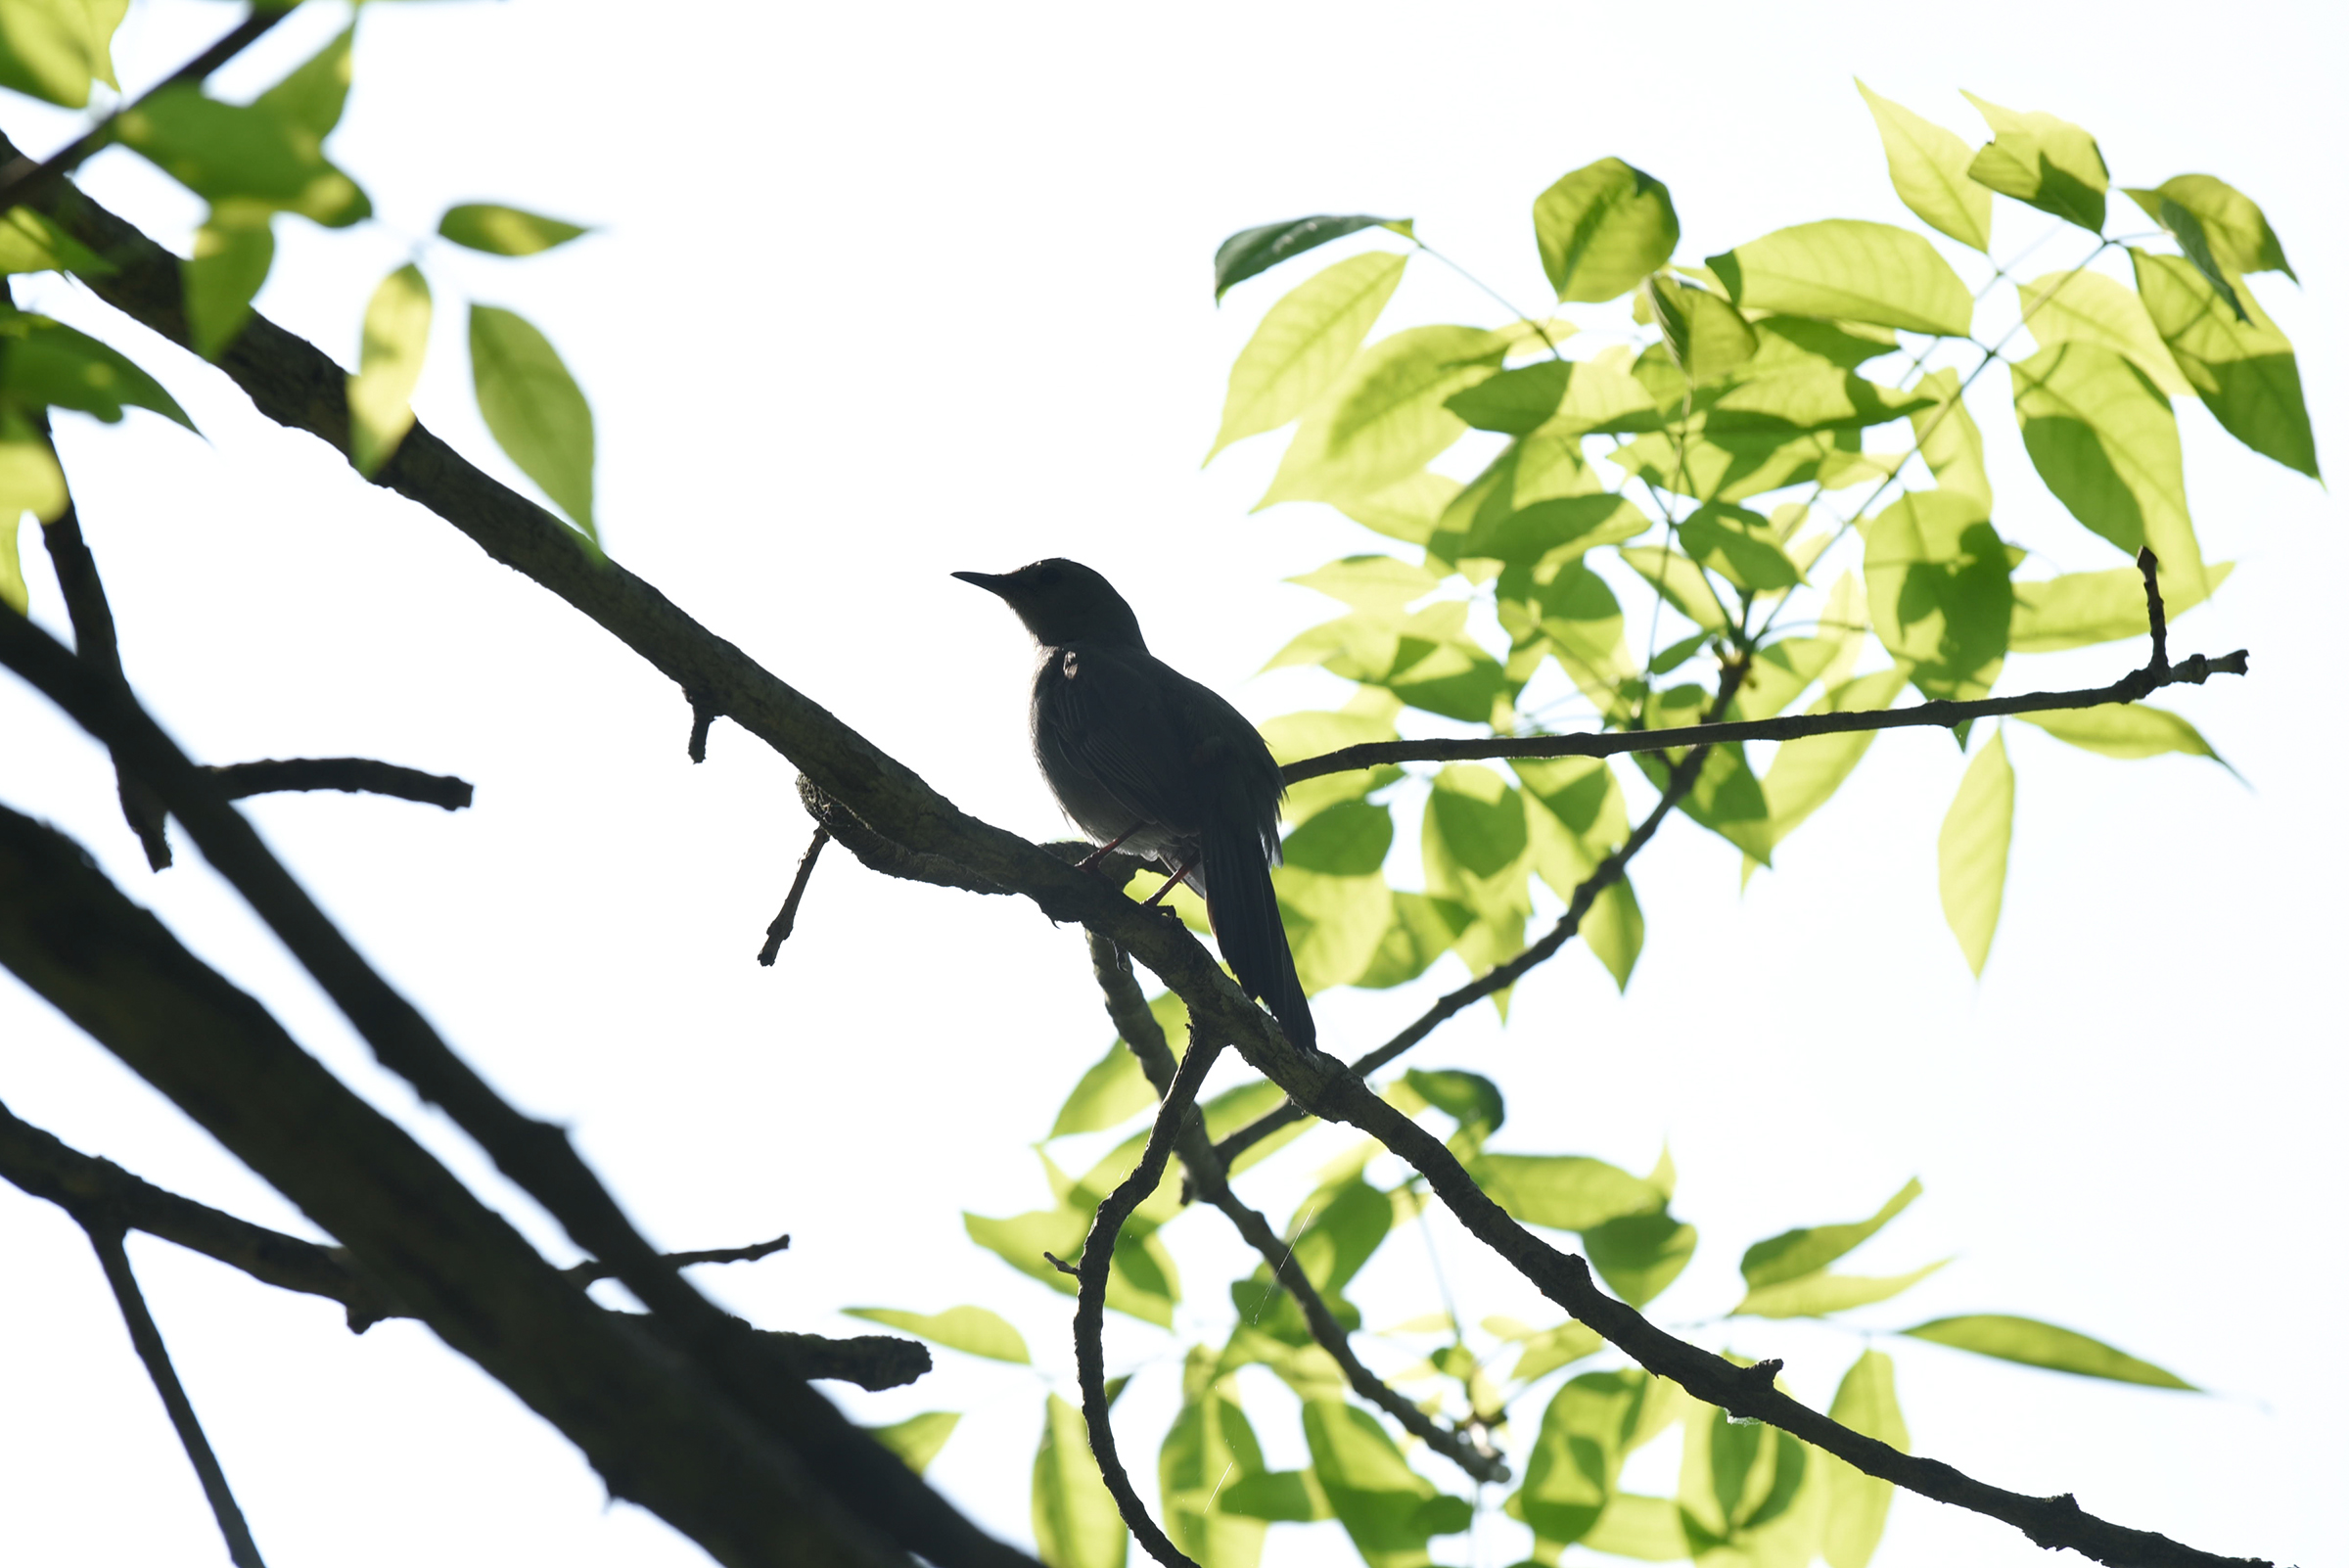 A silhouette of a bird in a tree.